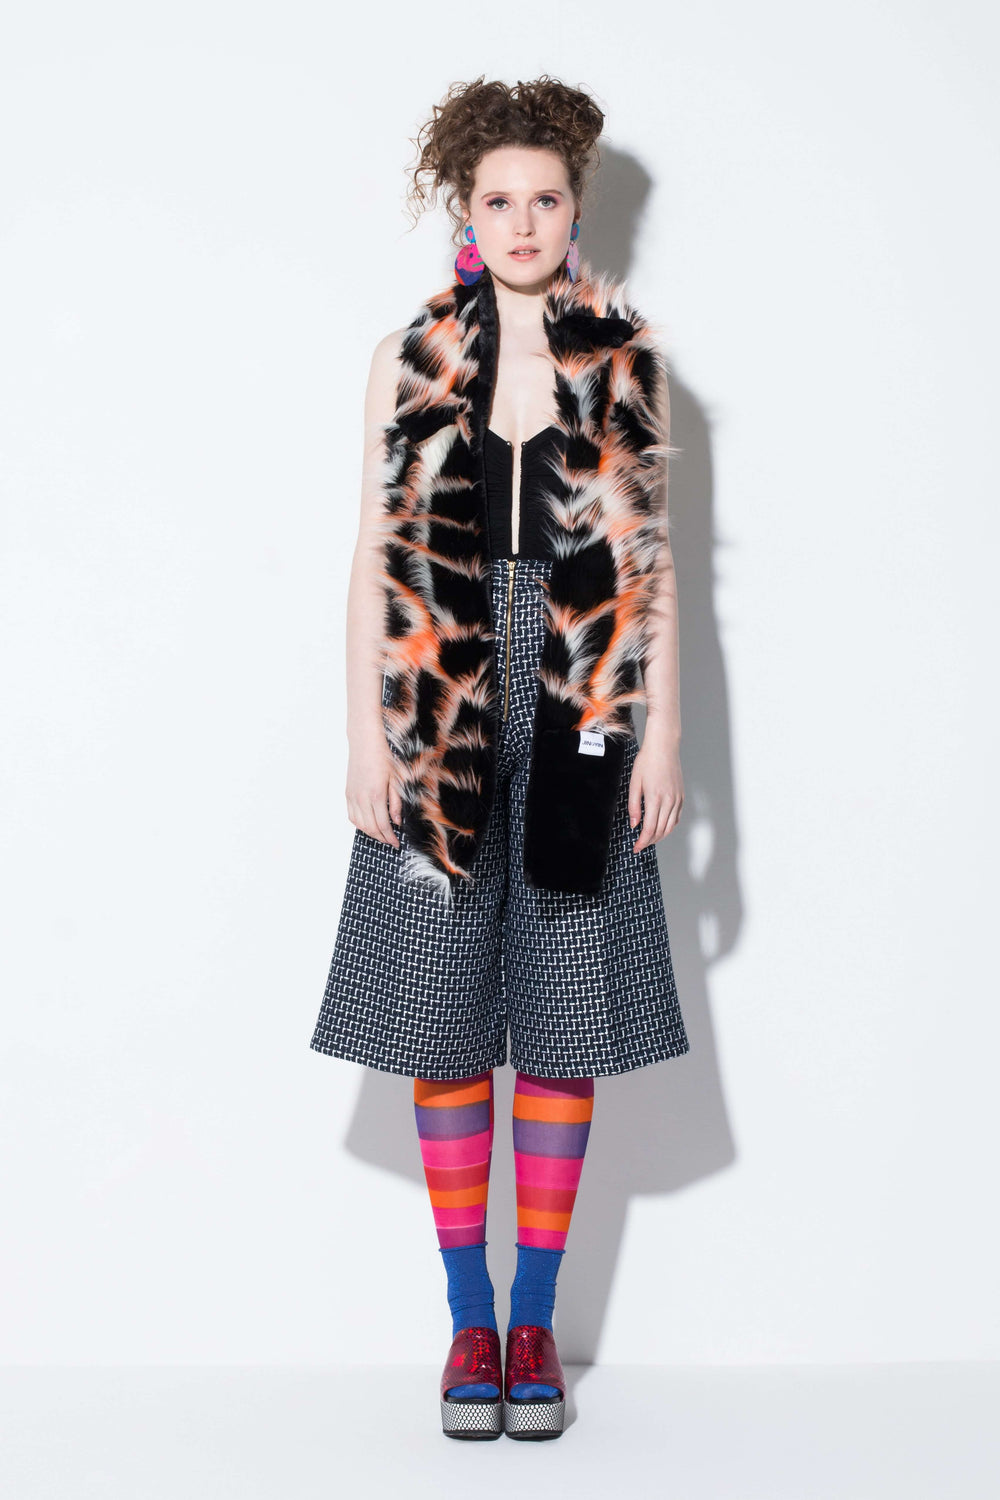 suitcase of memories| a fun faux fur scarf accessory in colour blocks from jin & yin styled with hand-painted tights